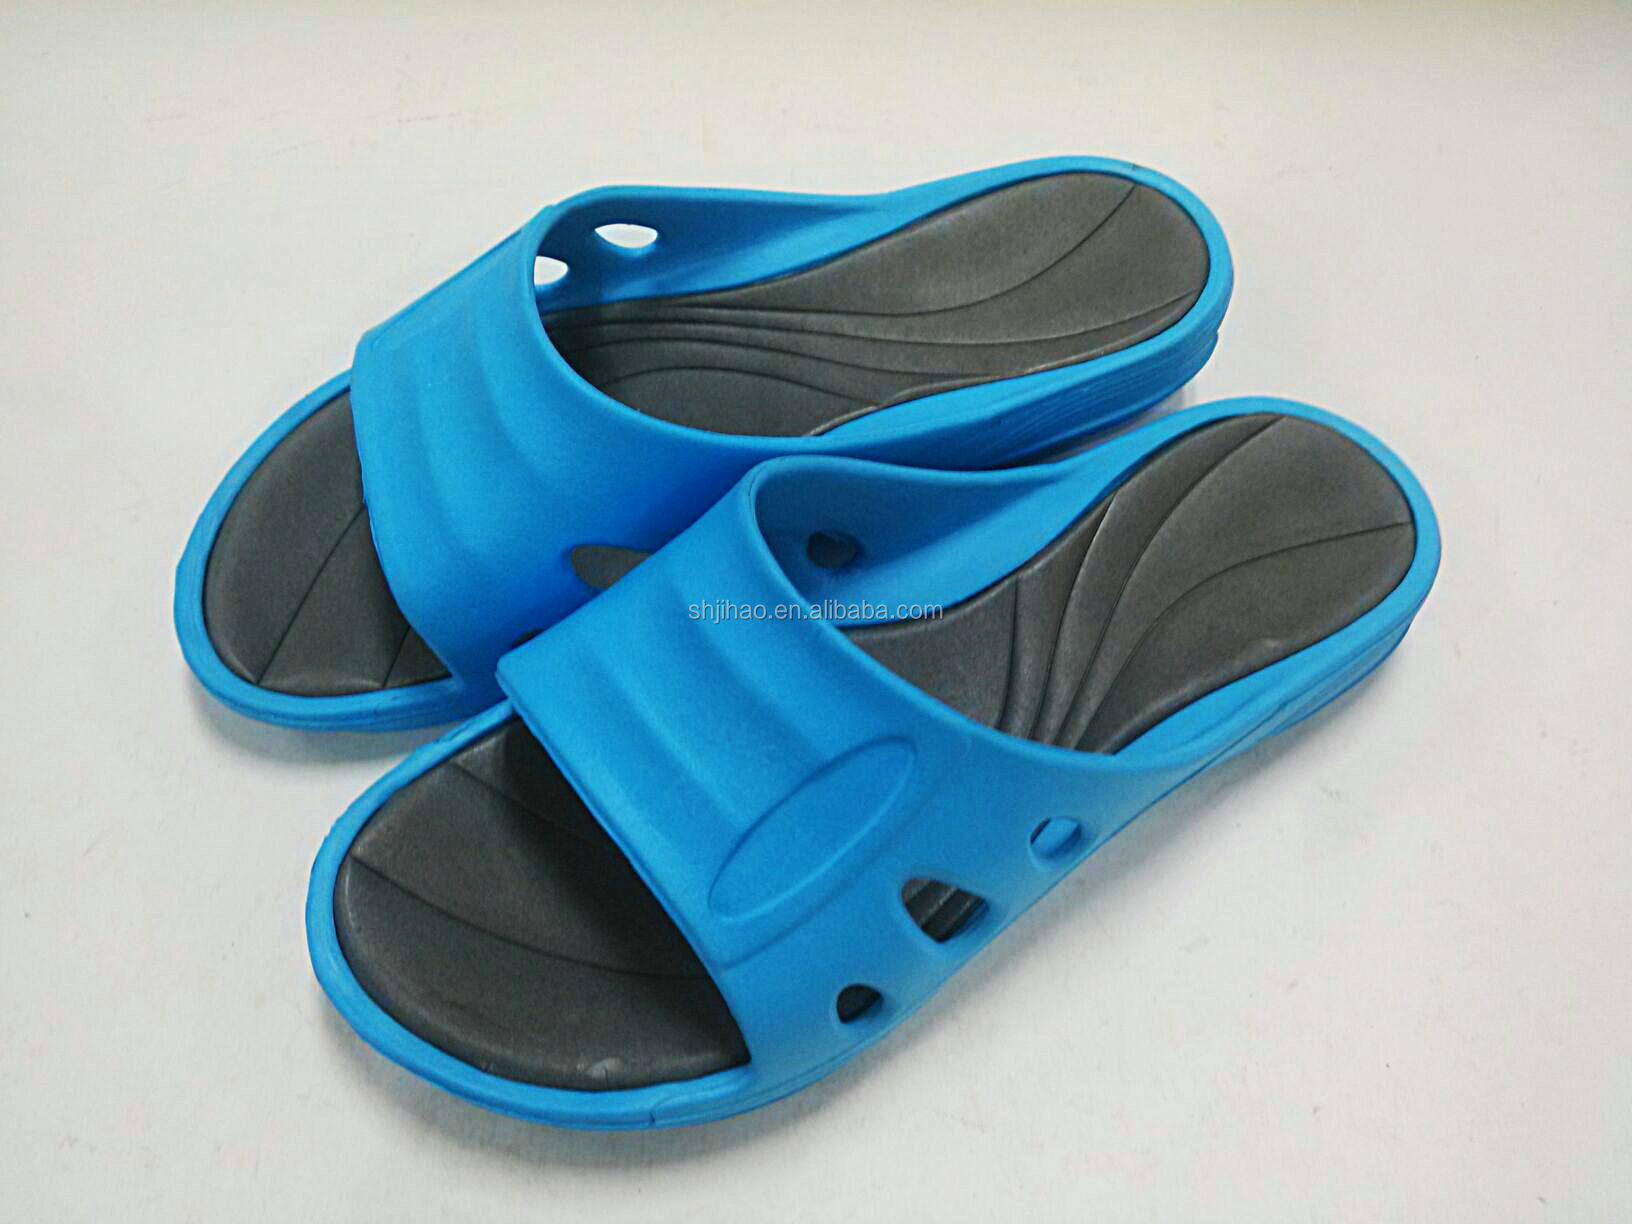 840d633e85e Comfortable Cheap Men Beach Massage Flip Flop Rubber Sandal - Buy ...